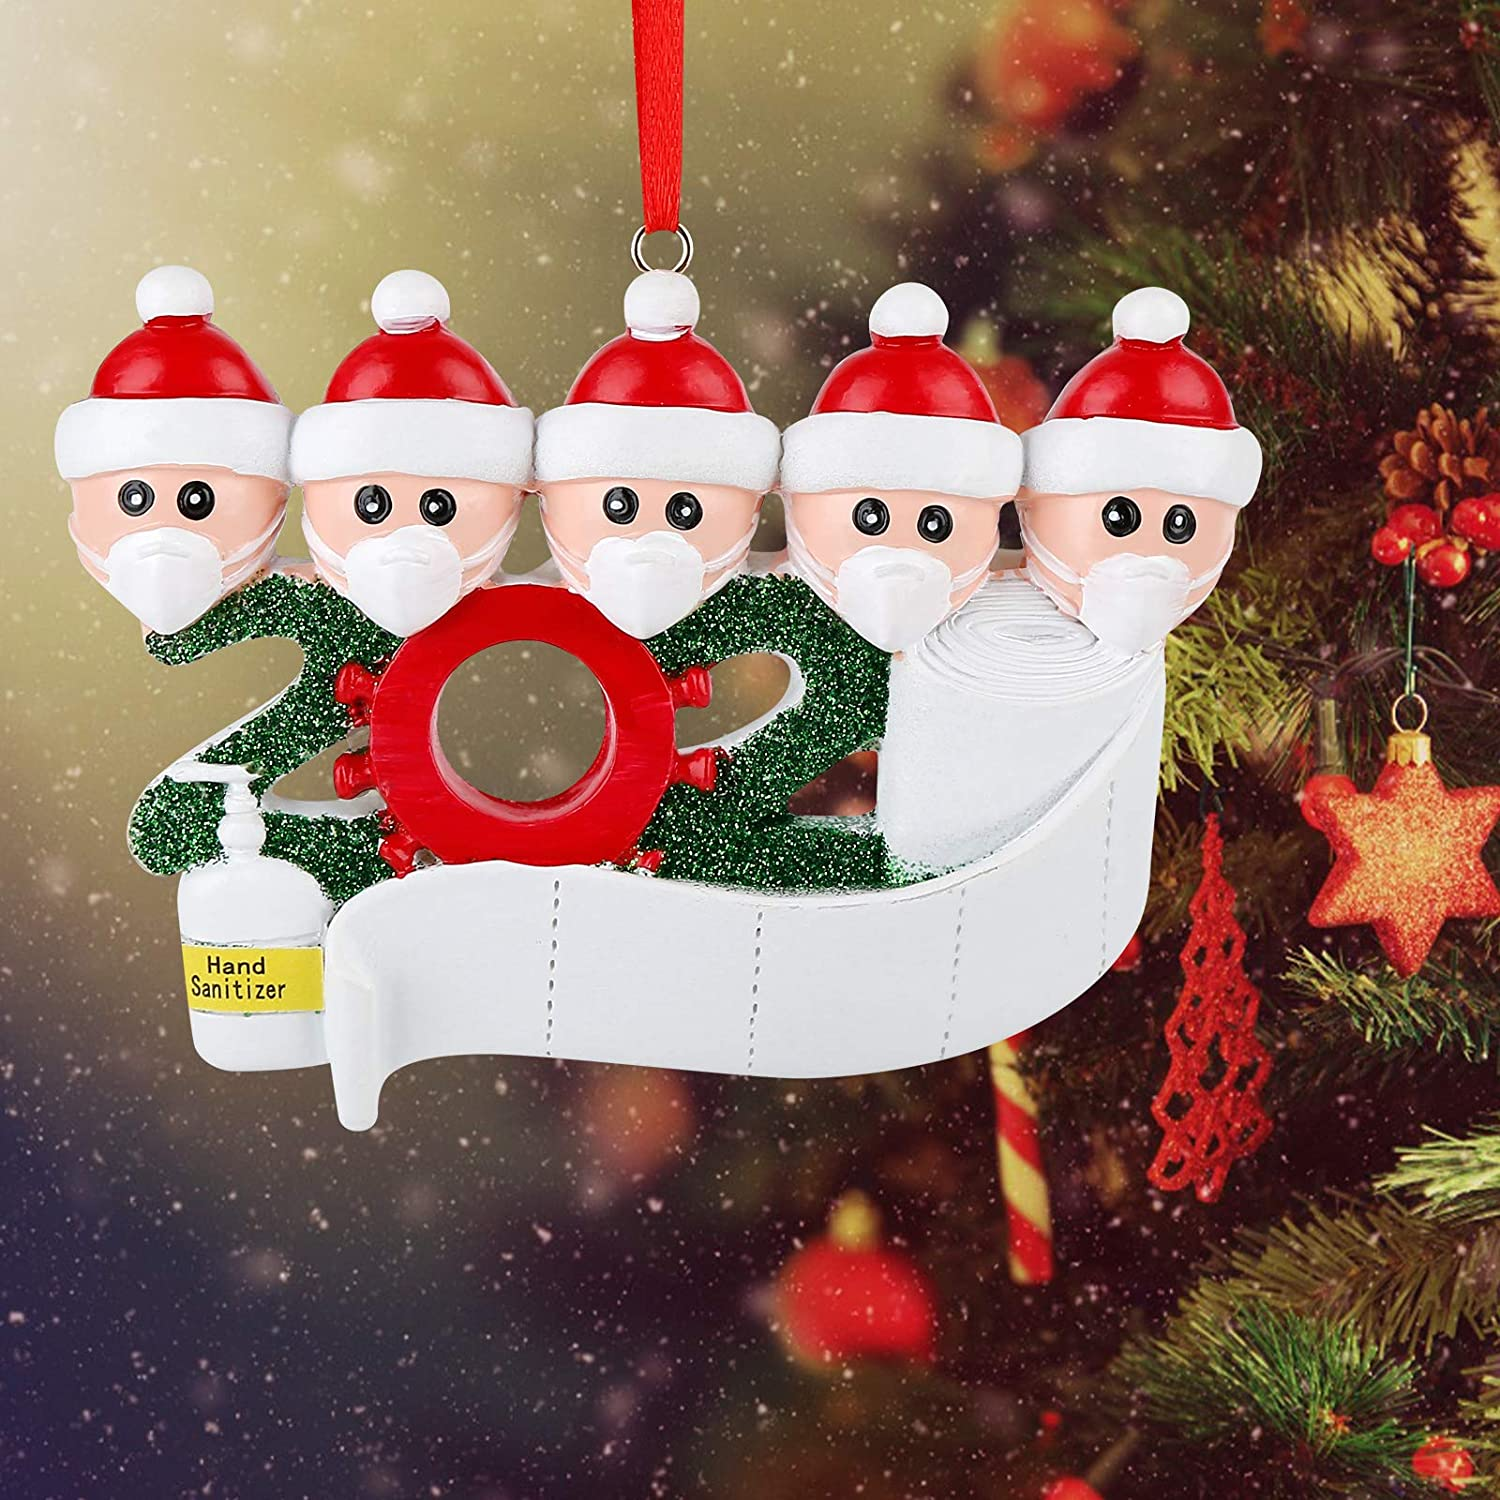 Kaqulec Christmas Ornament Personalized Decorations Home Family Member Gift Christmas Tree Indoor DIY Set with Toilet Paper Creative Survivor Family Xmas Gifts (Free Marker Pen)